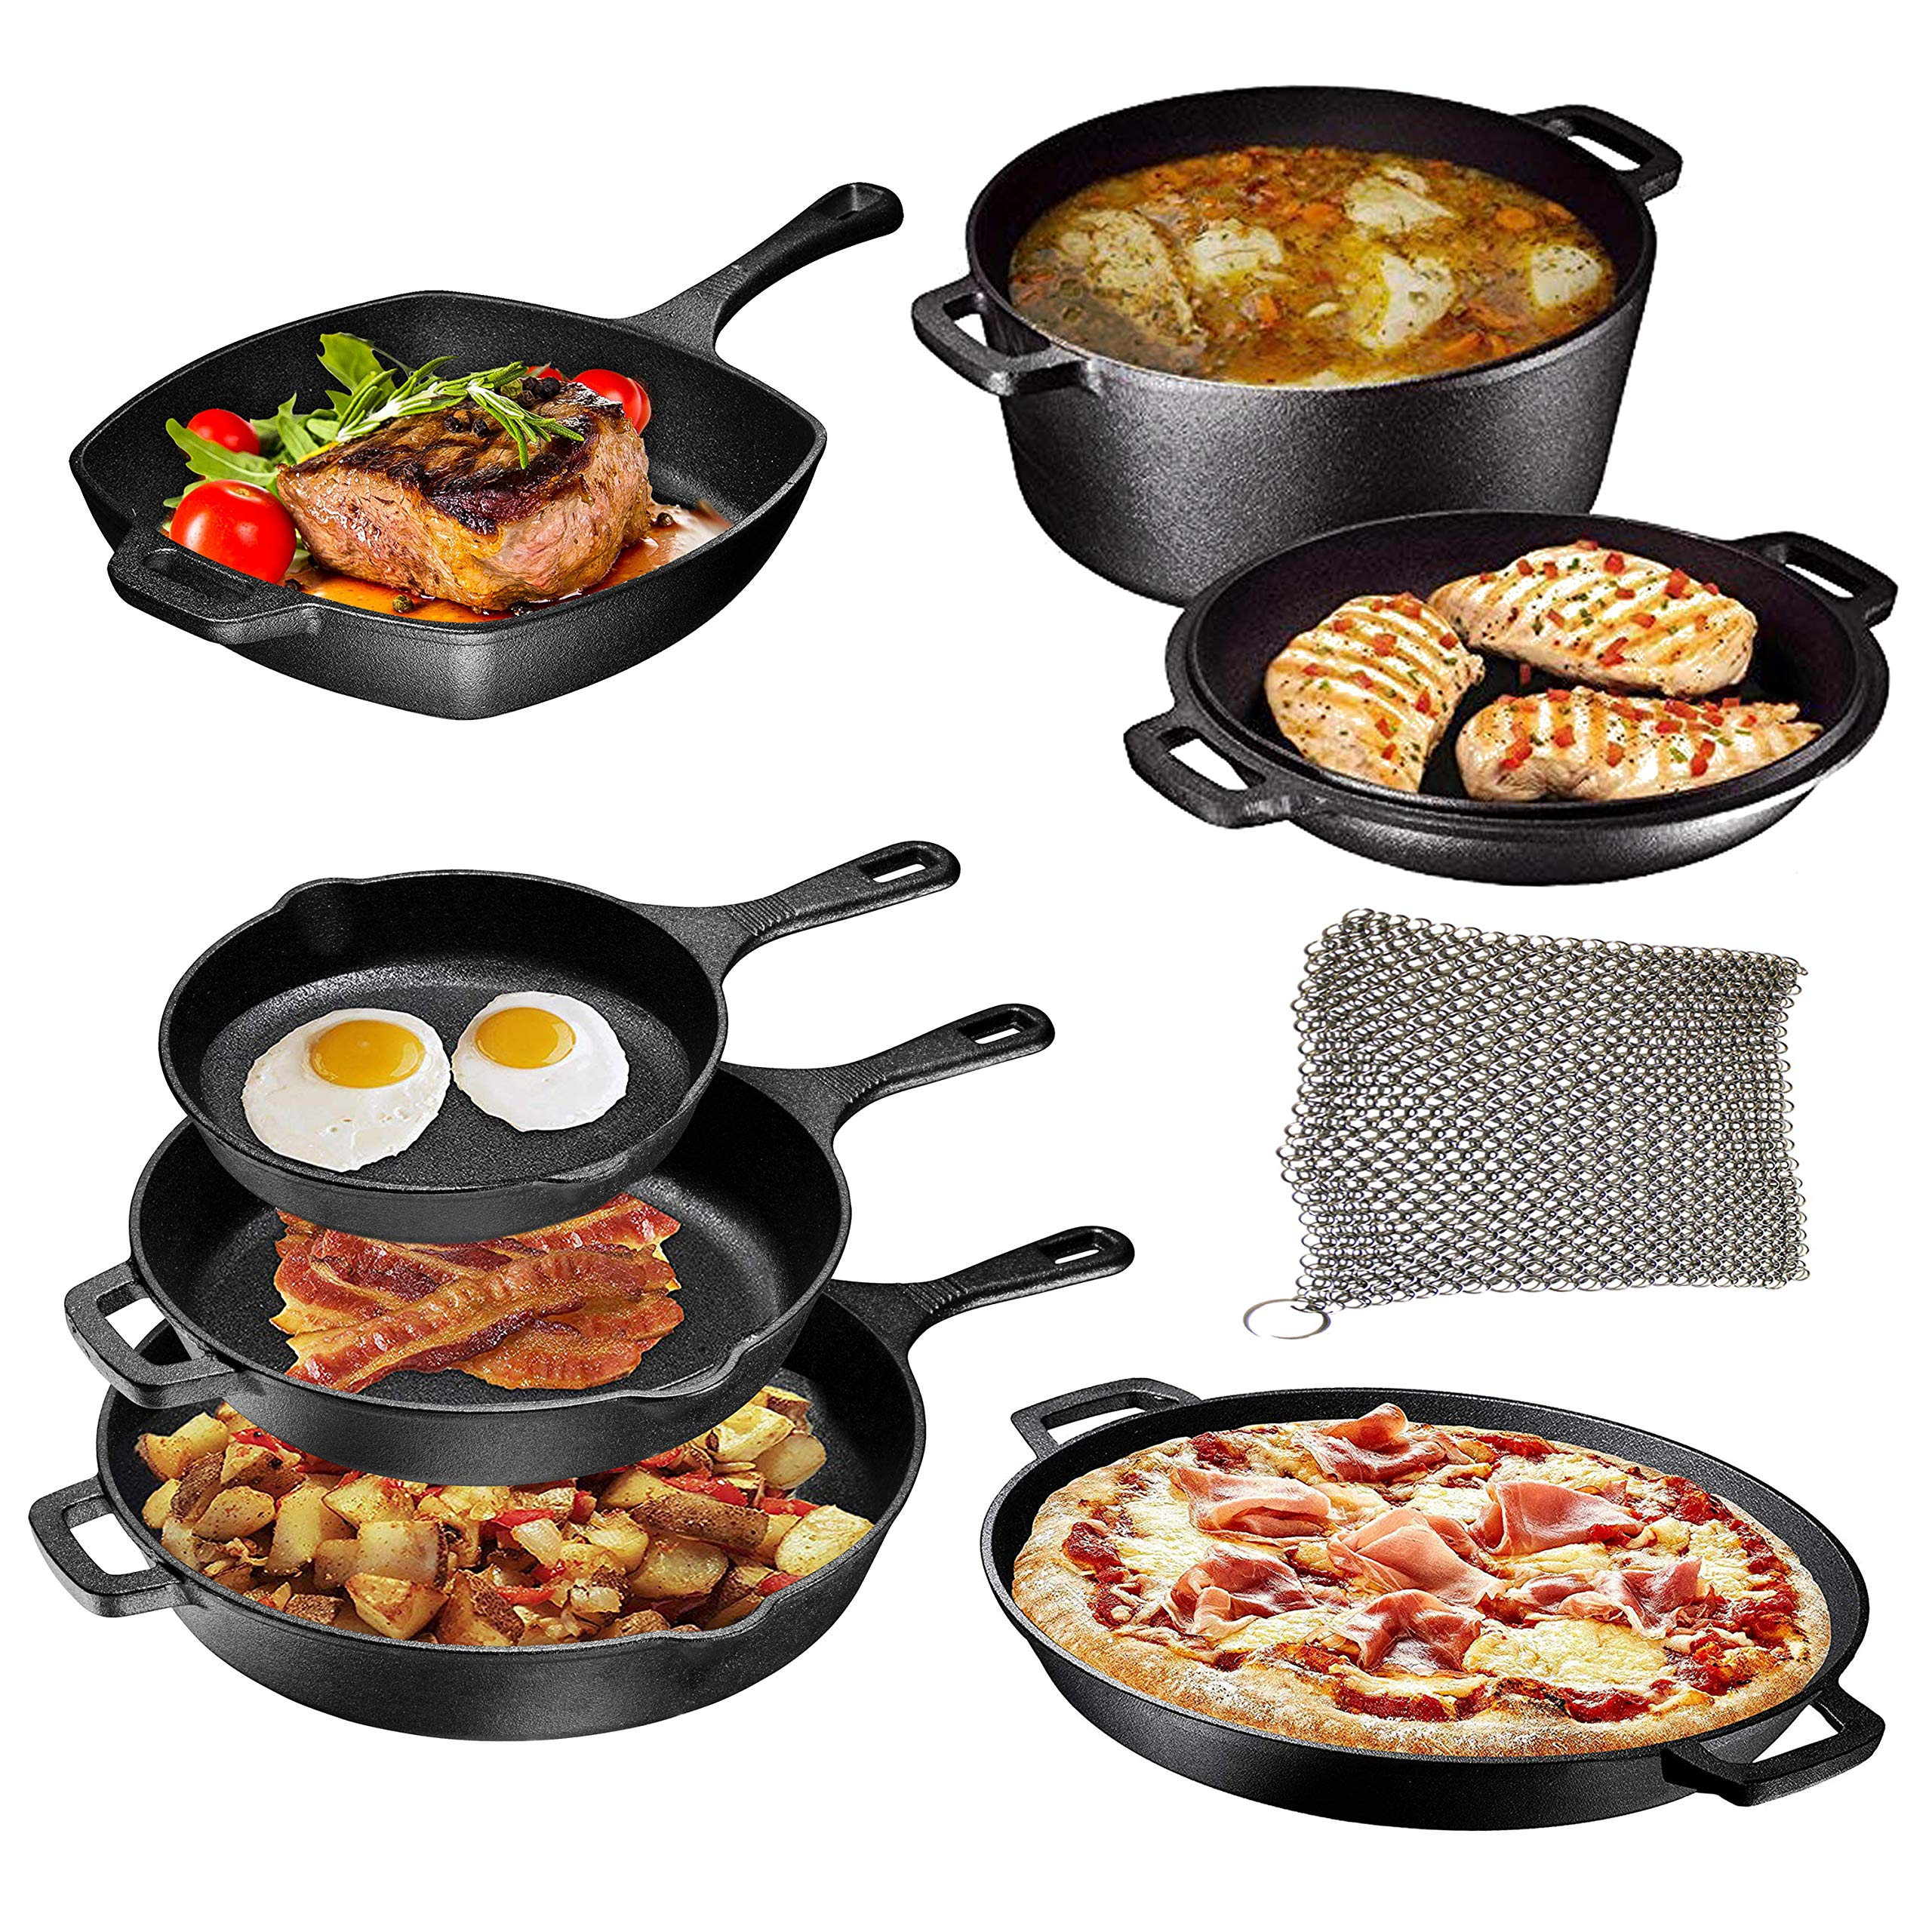 Pre Seasoned Cast Iron 8 Piece Bundle Camping Gift Set, Double Dutch, 16 inch Pizza Pan, 3 Skillets & Square Grill Pan, Camping Cookware Set by Bruntmor